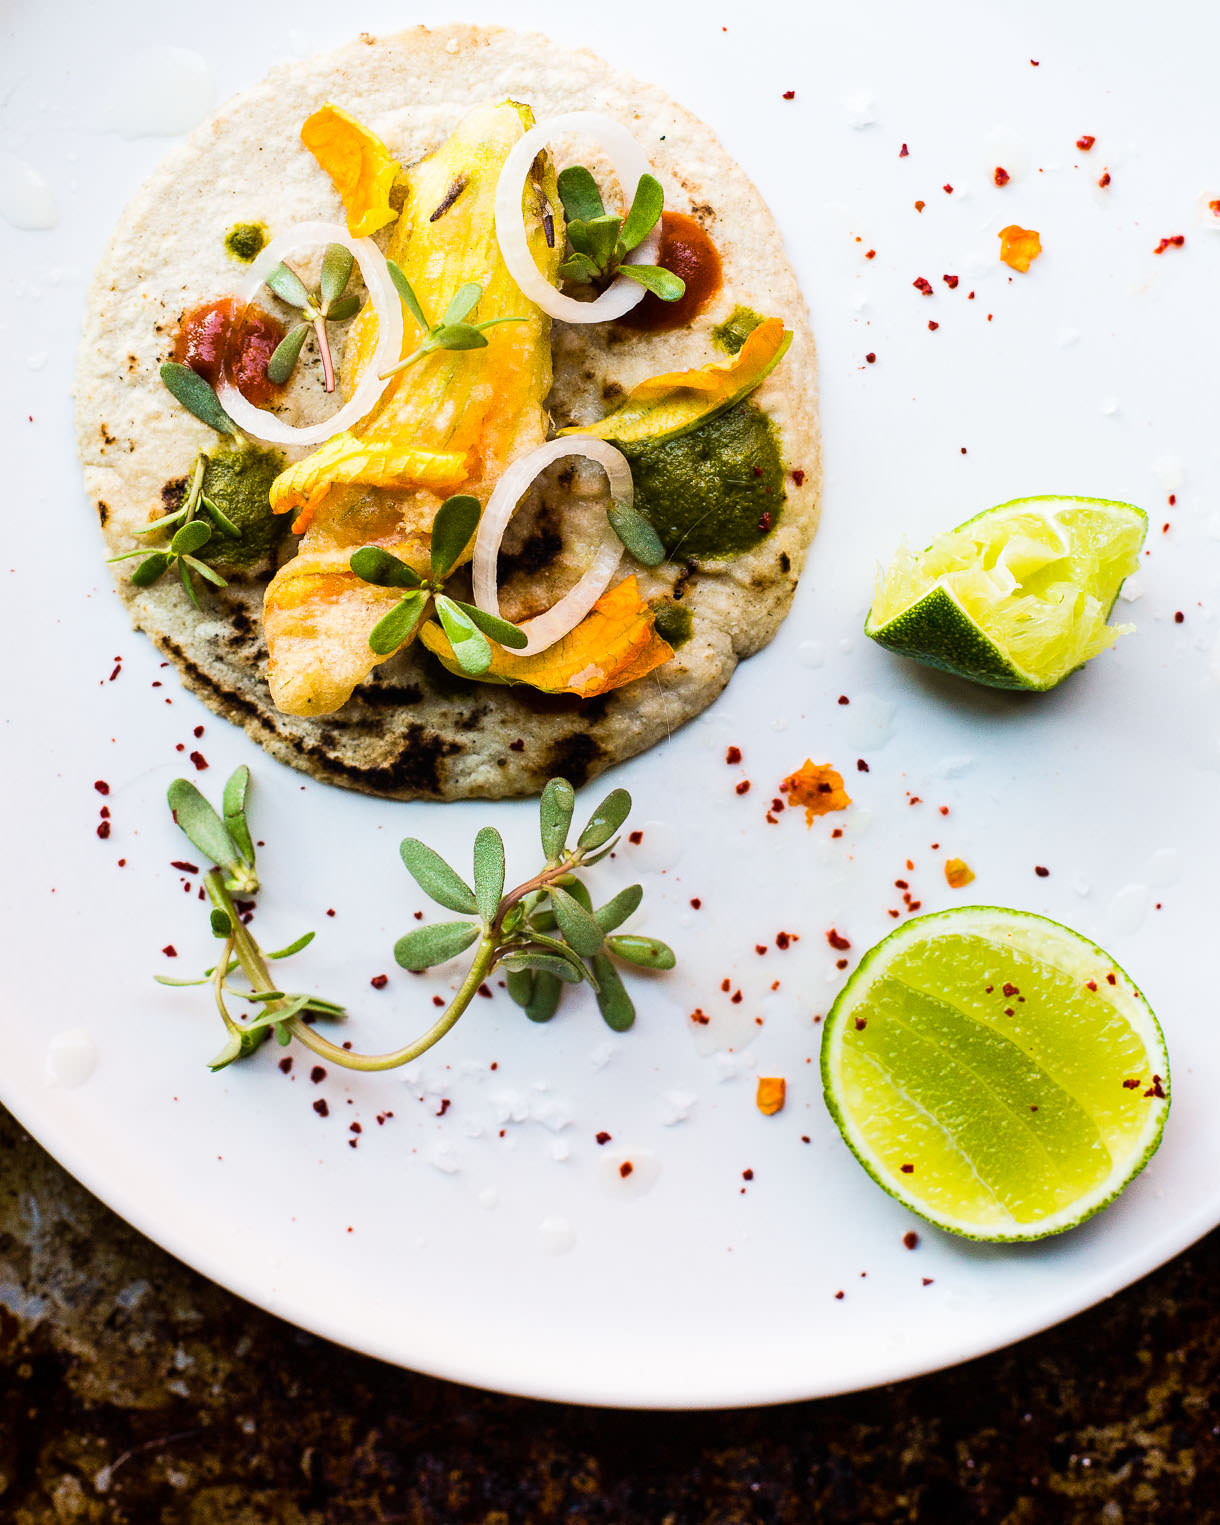 gluten-free Fried Squash Blossom Tacos stuffed with Queso Fundido